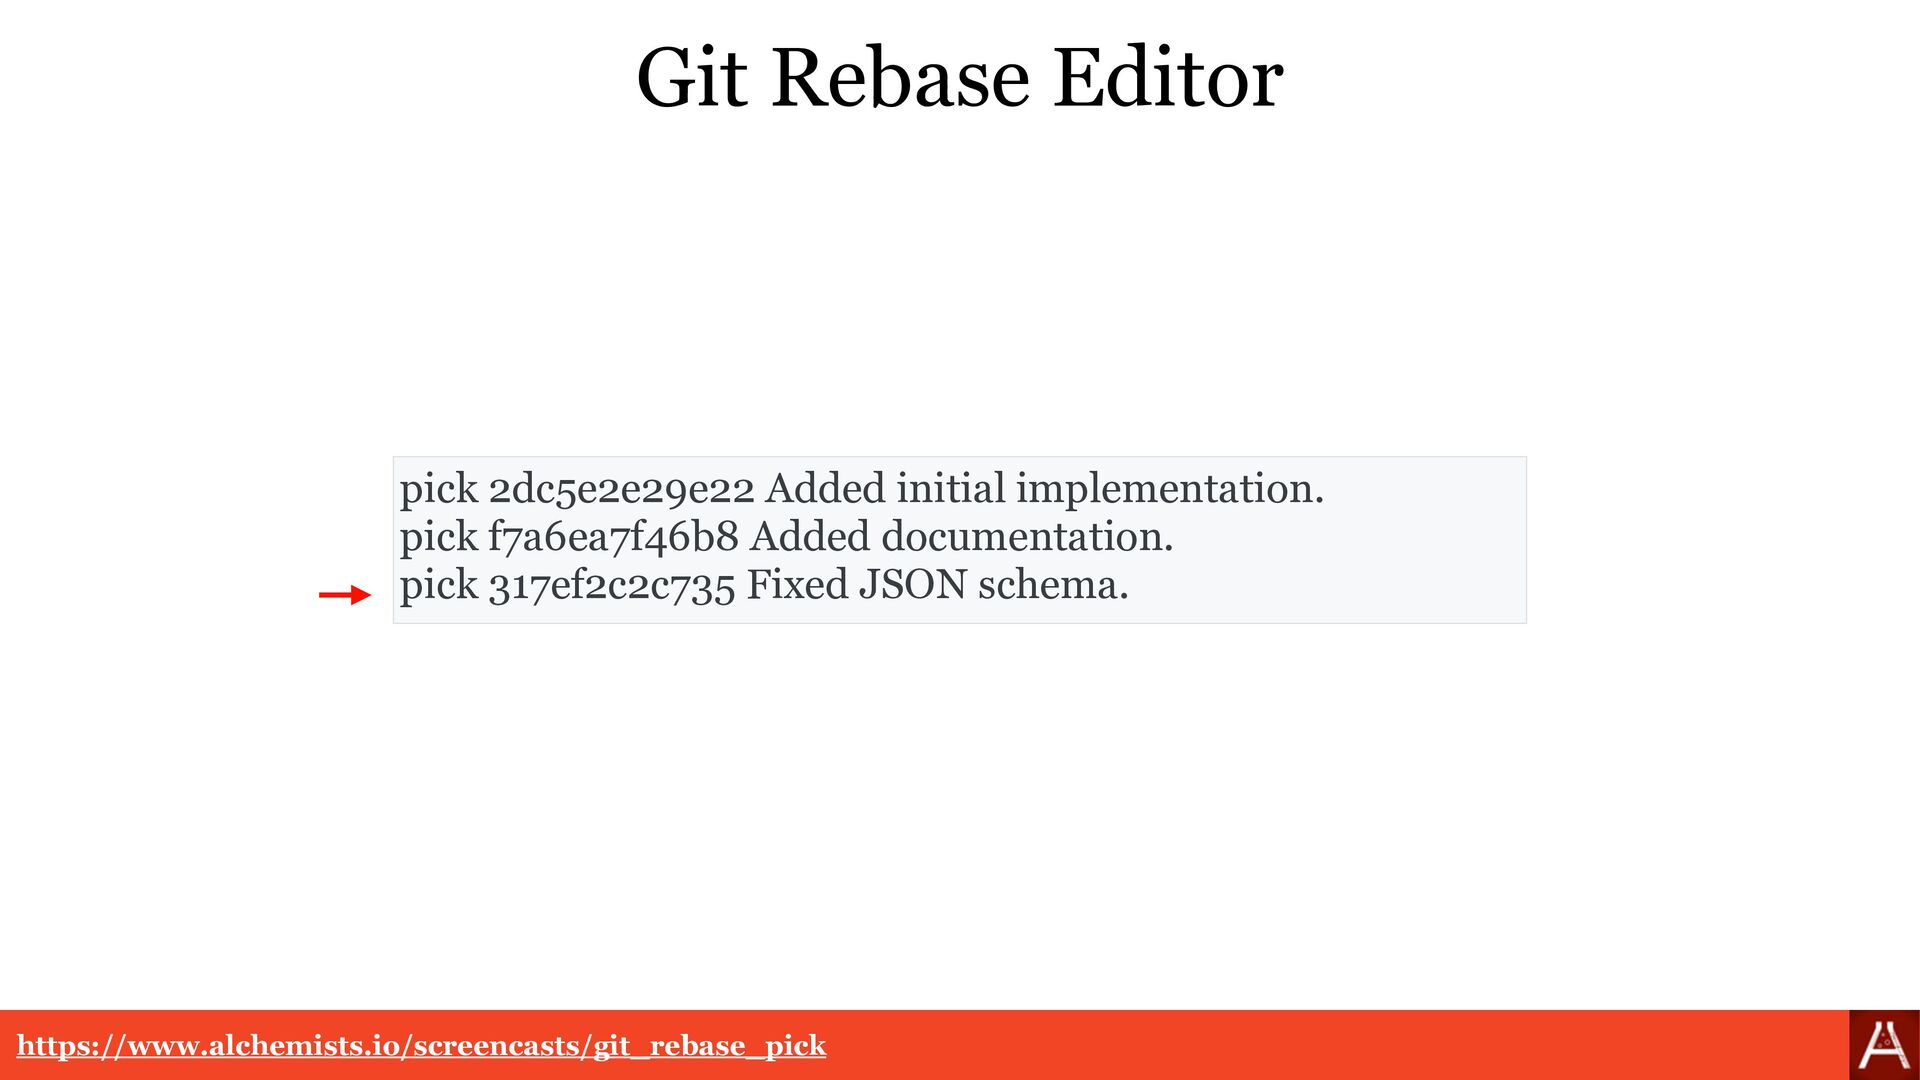 Git Rebase Pick https://www.alchemists.io/scree...